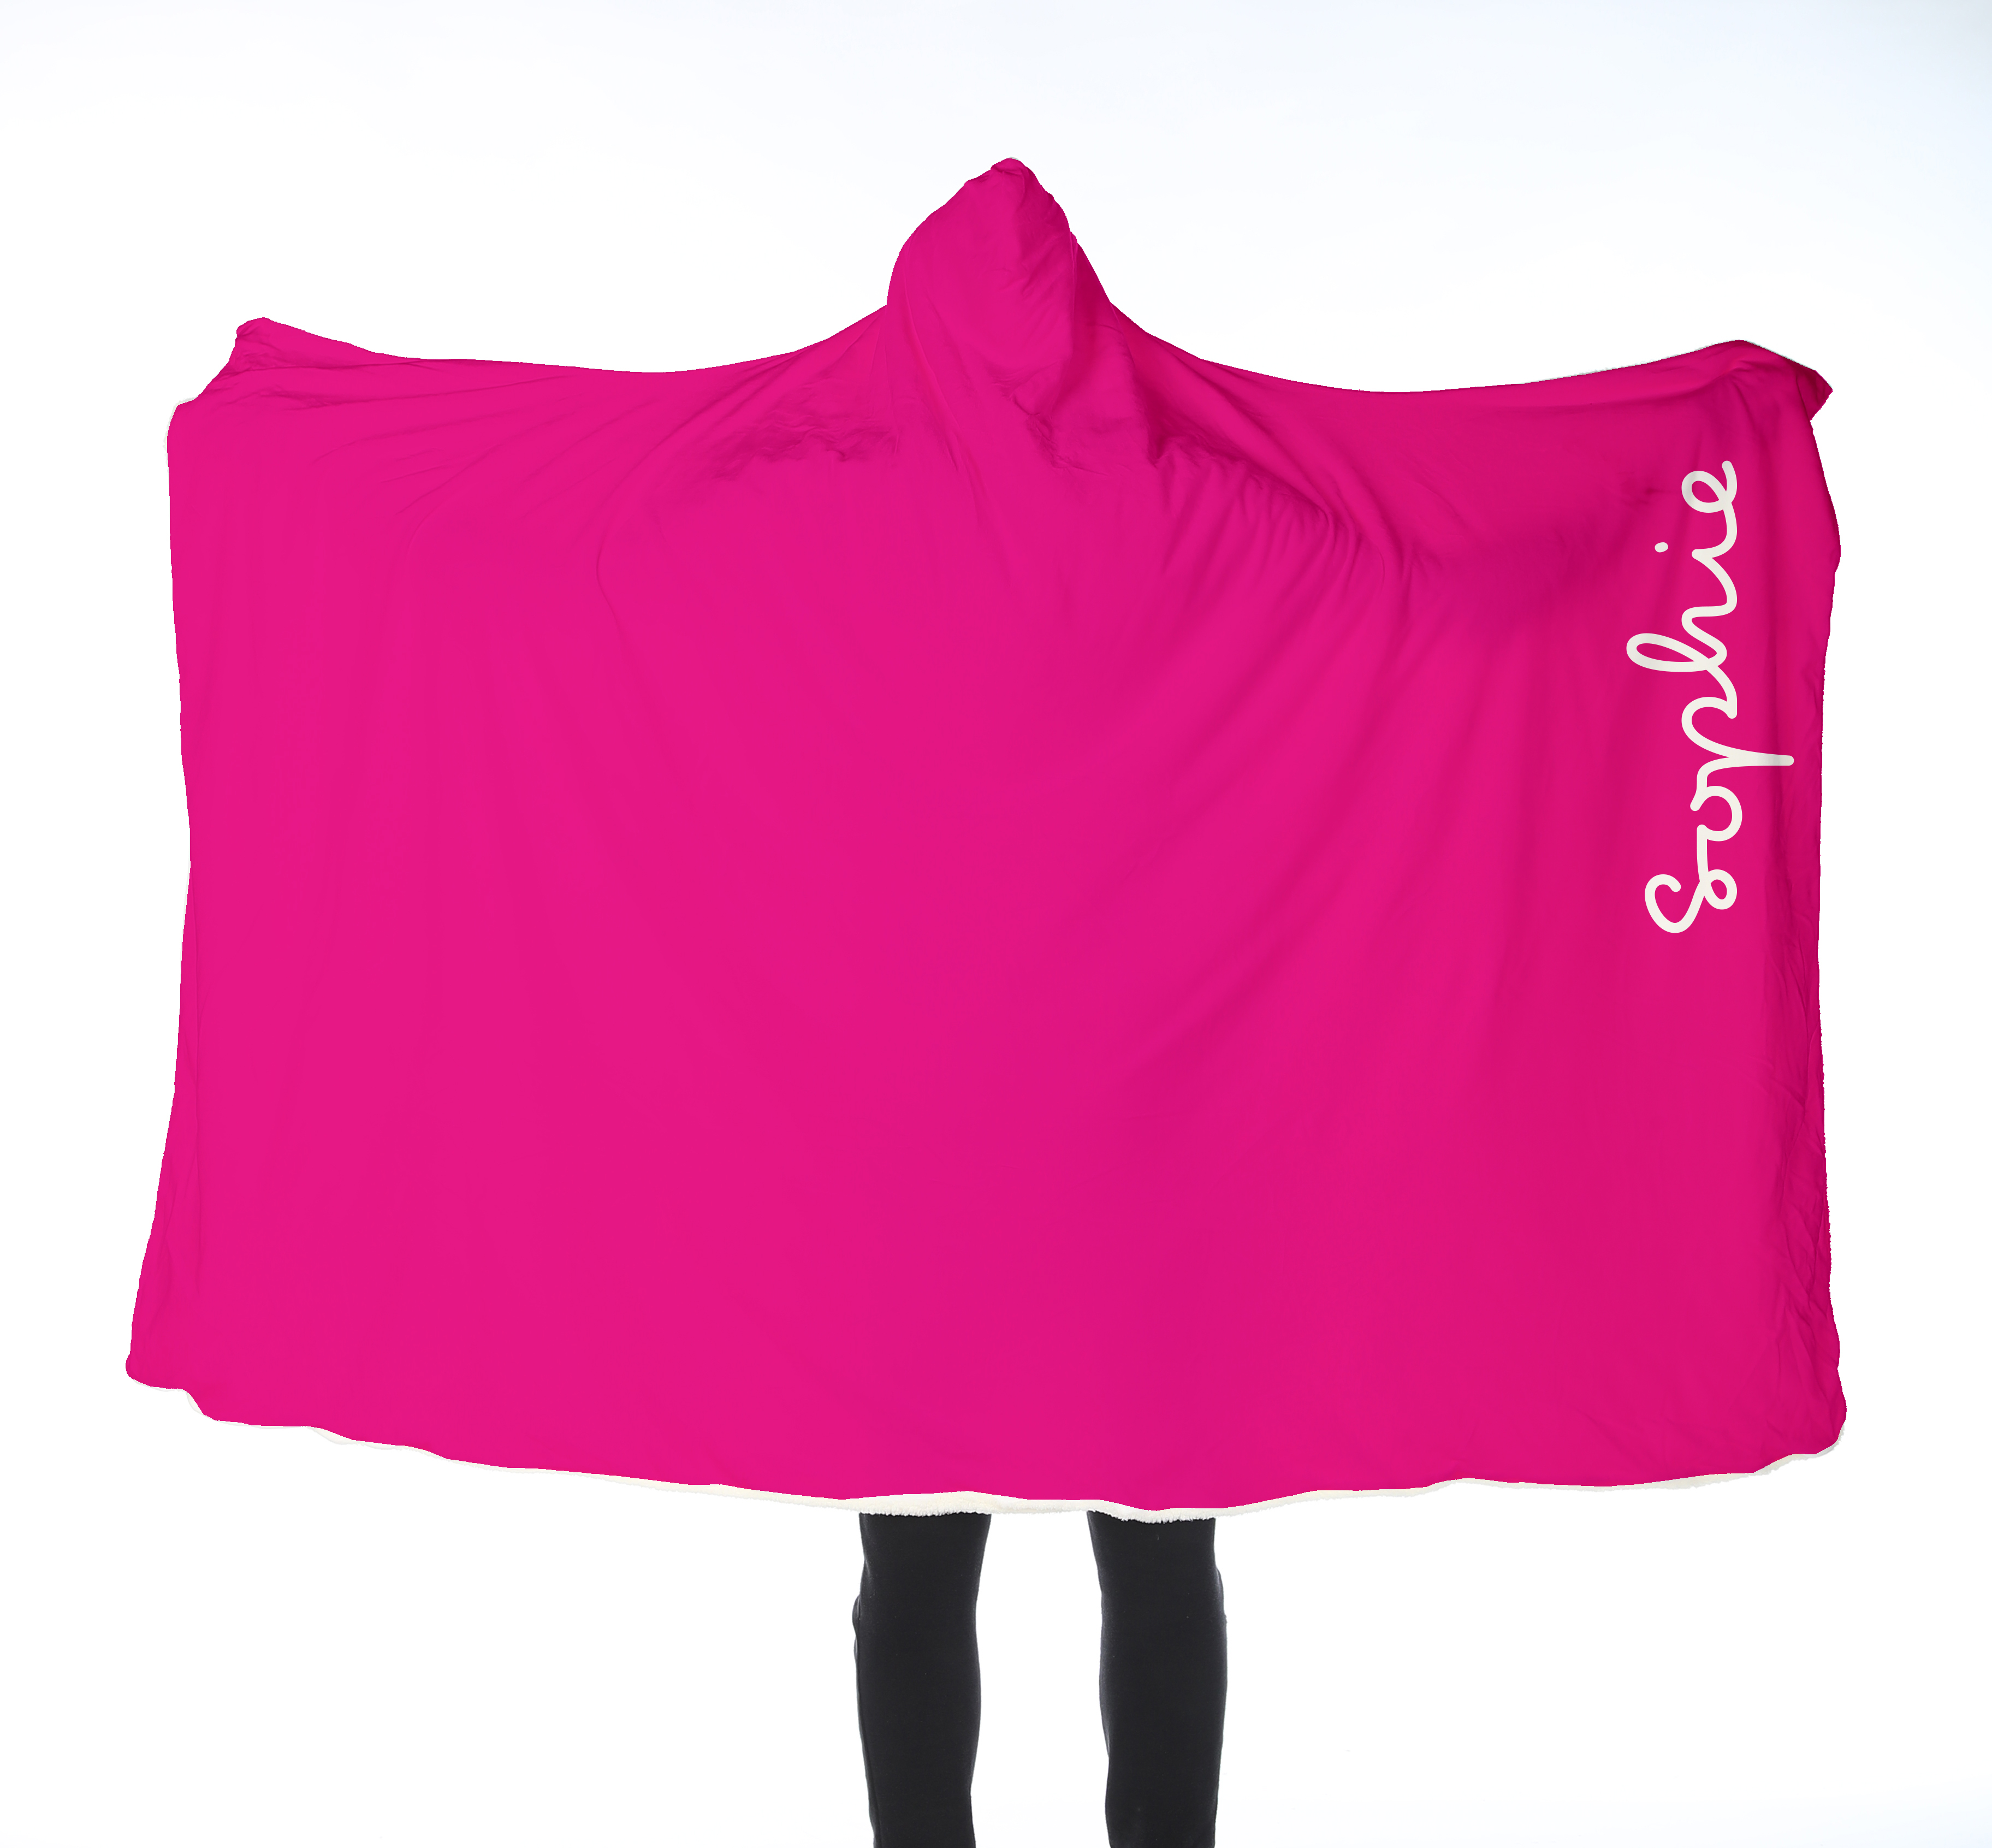 Adults Island Hooded Blanket - White on Pink